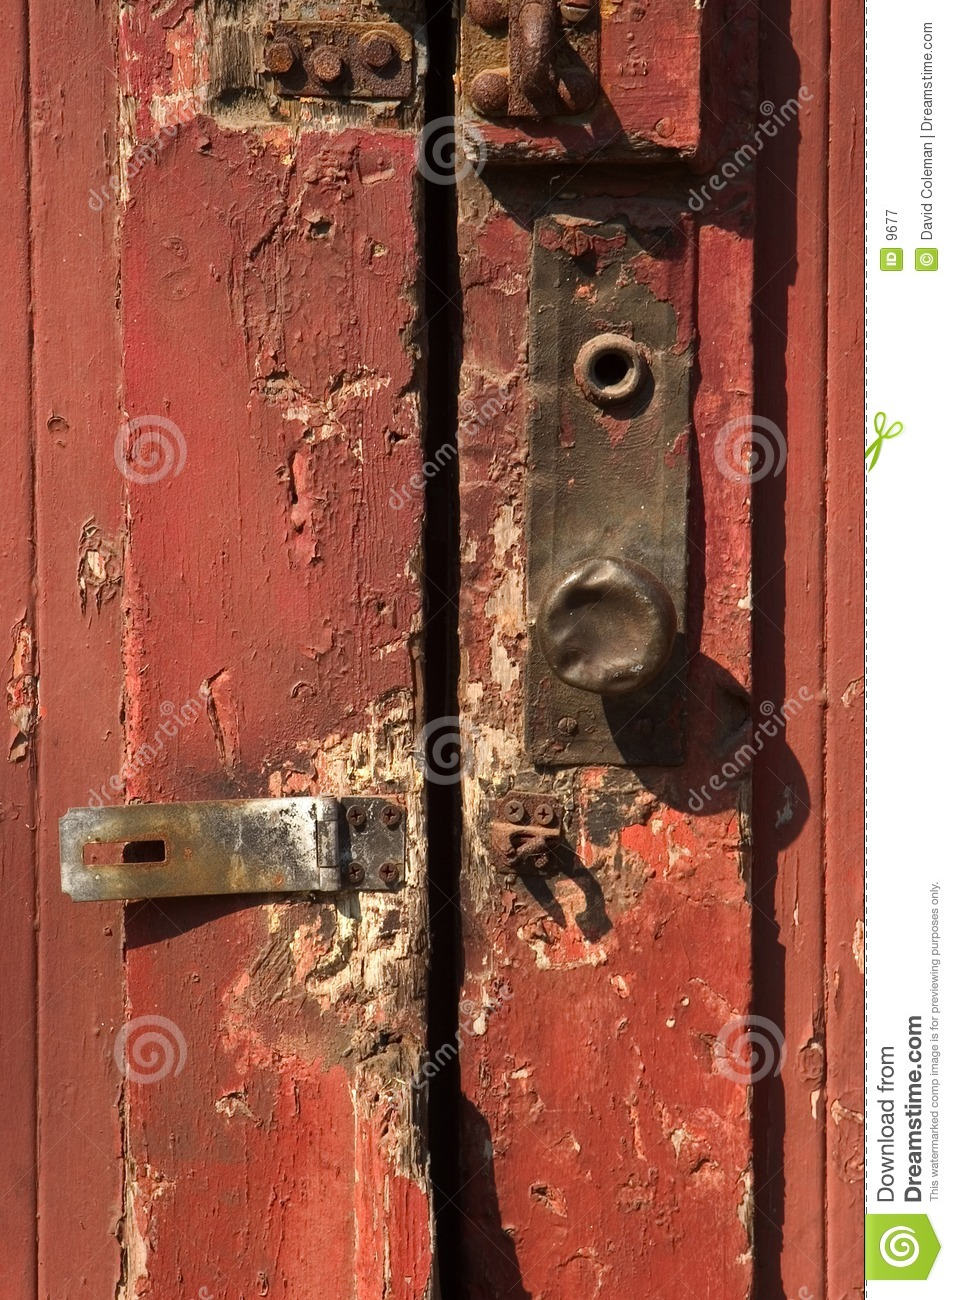 Red door with metal door knob